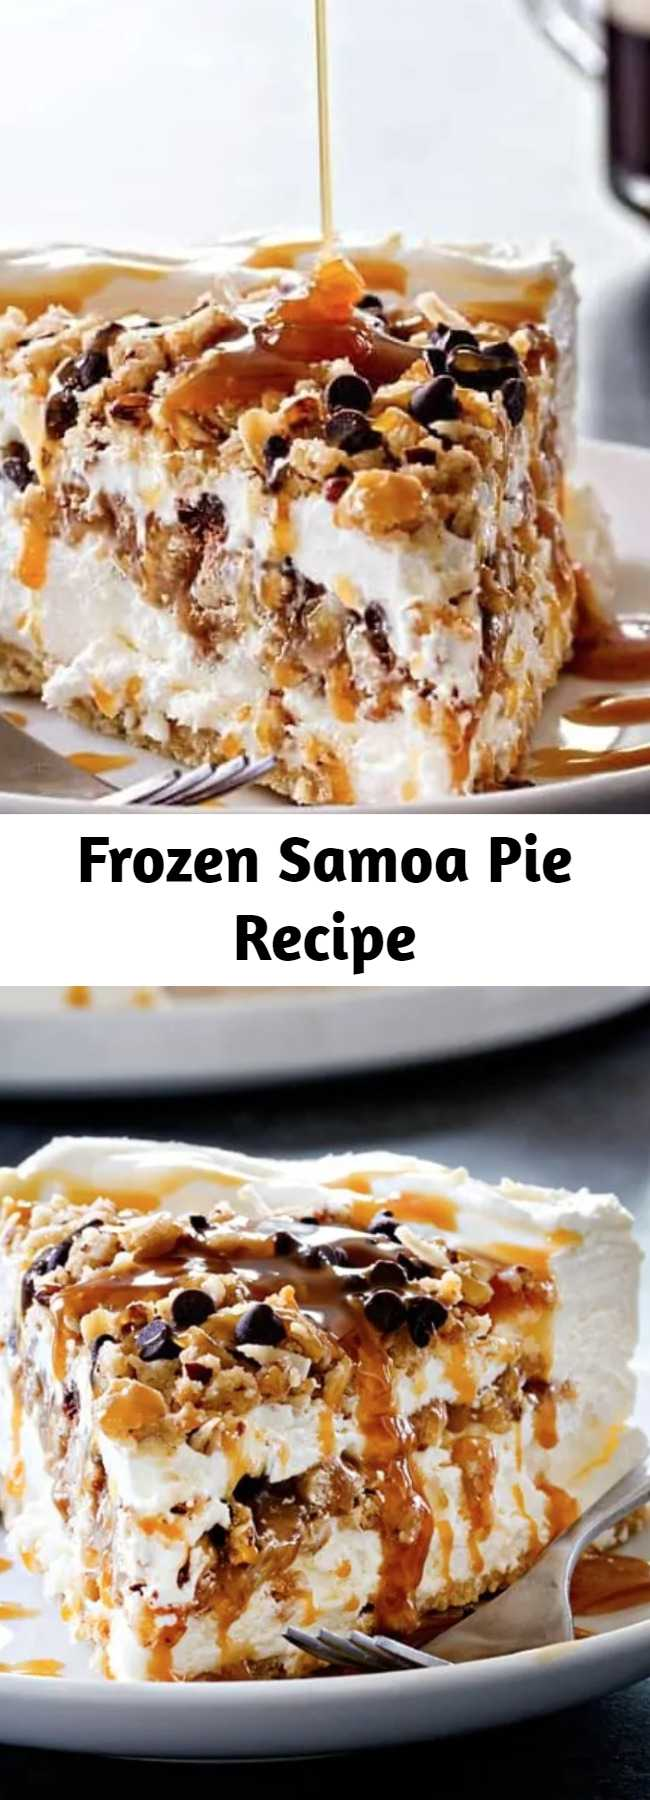 Frozen Samoa Pie Recipe - Frozen Samoa Pie is pretty much a chocolate-caramel-coconut lover's dream. Layers upon layers of those delectable flavors, in one frozen treat! This is the cold treat you crave on a hot day... You won't be disappointed!